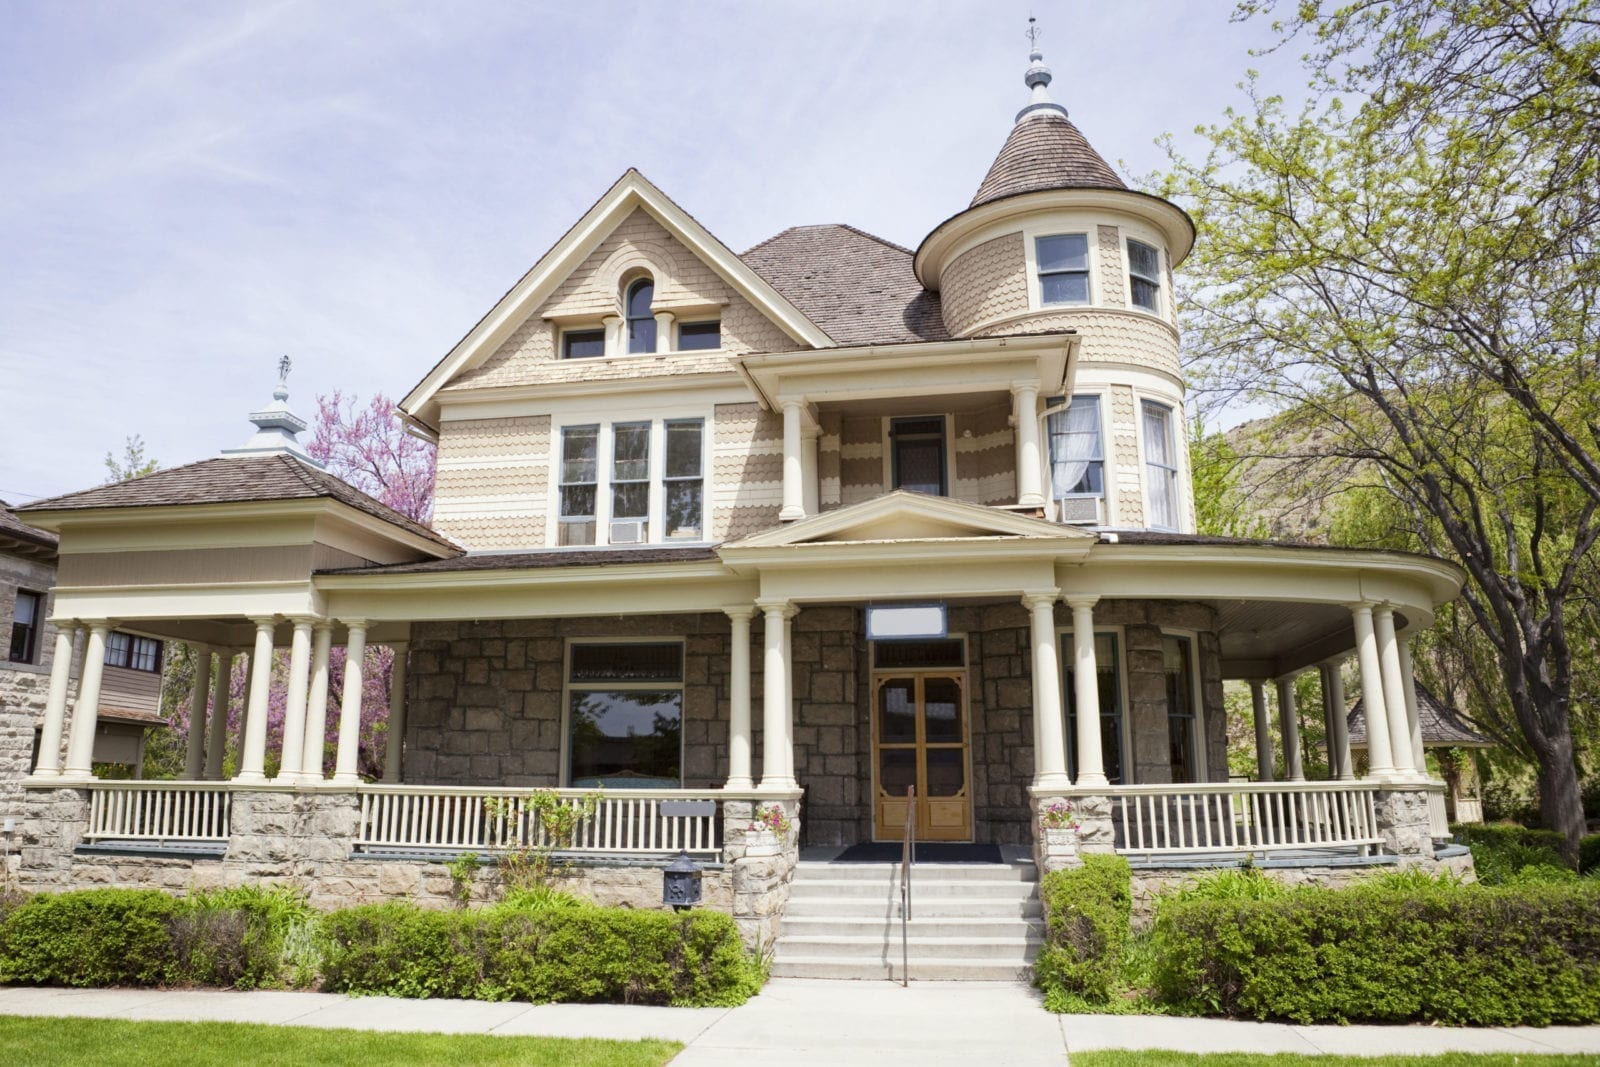 Seven home architectural styles you should know